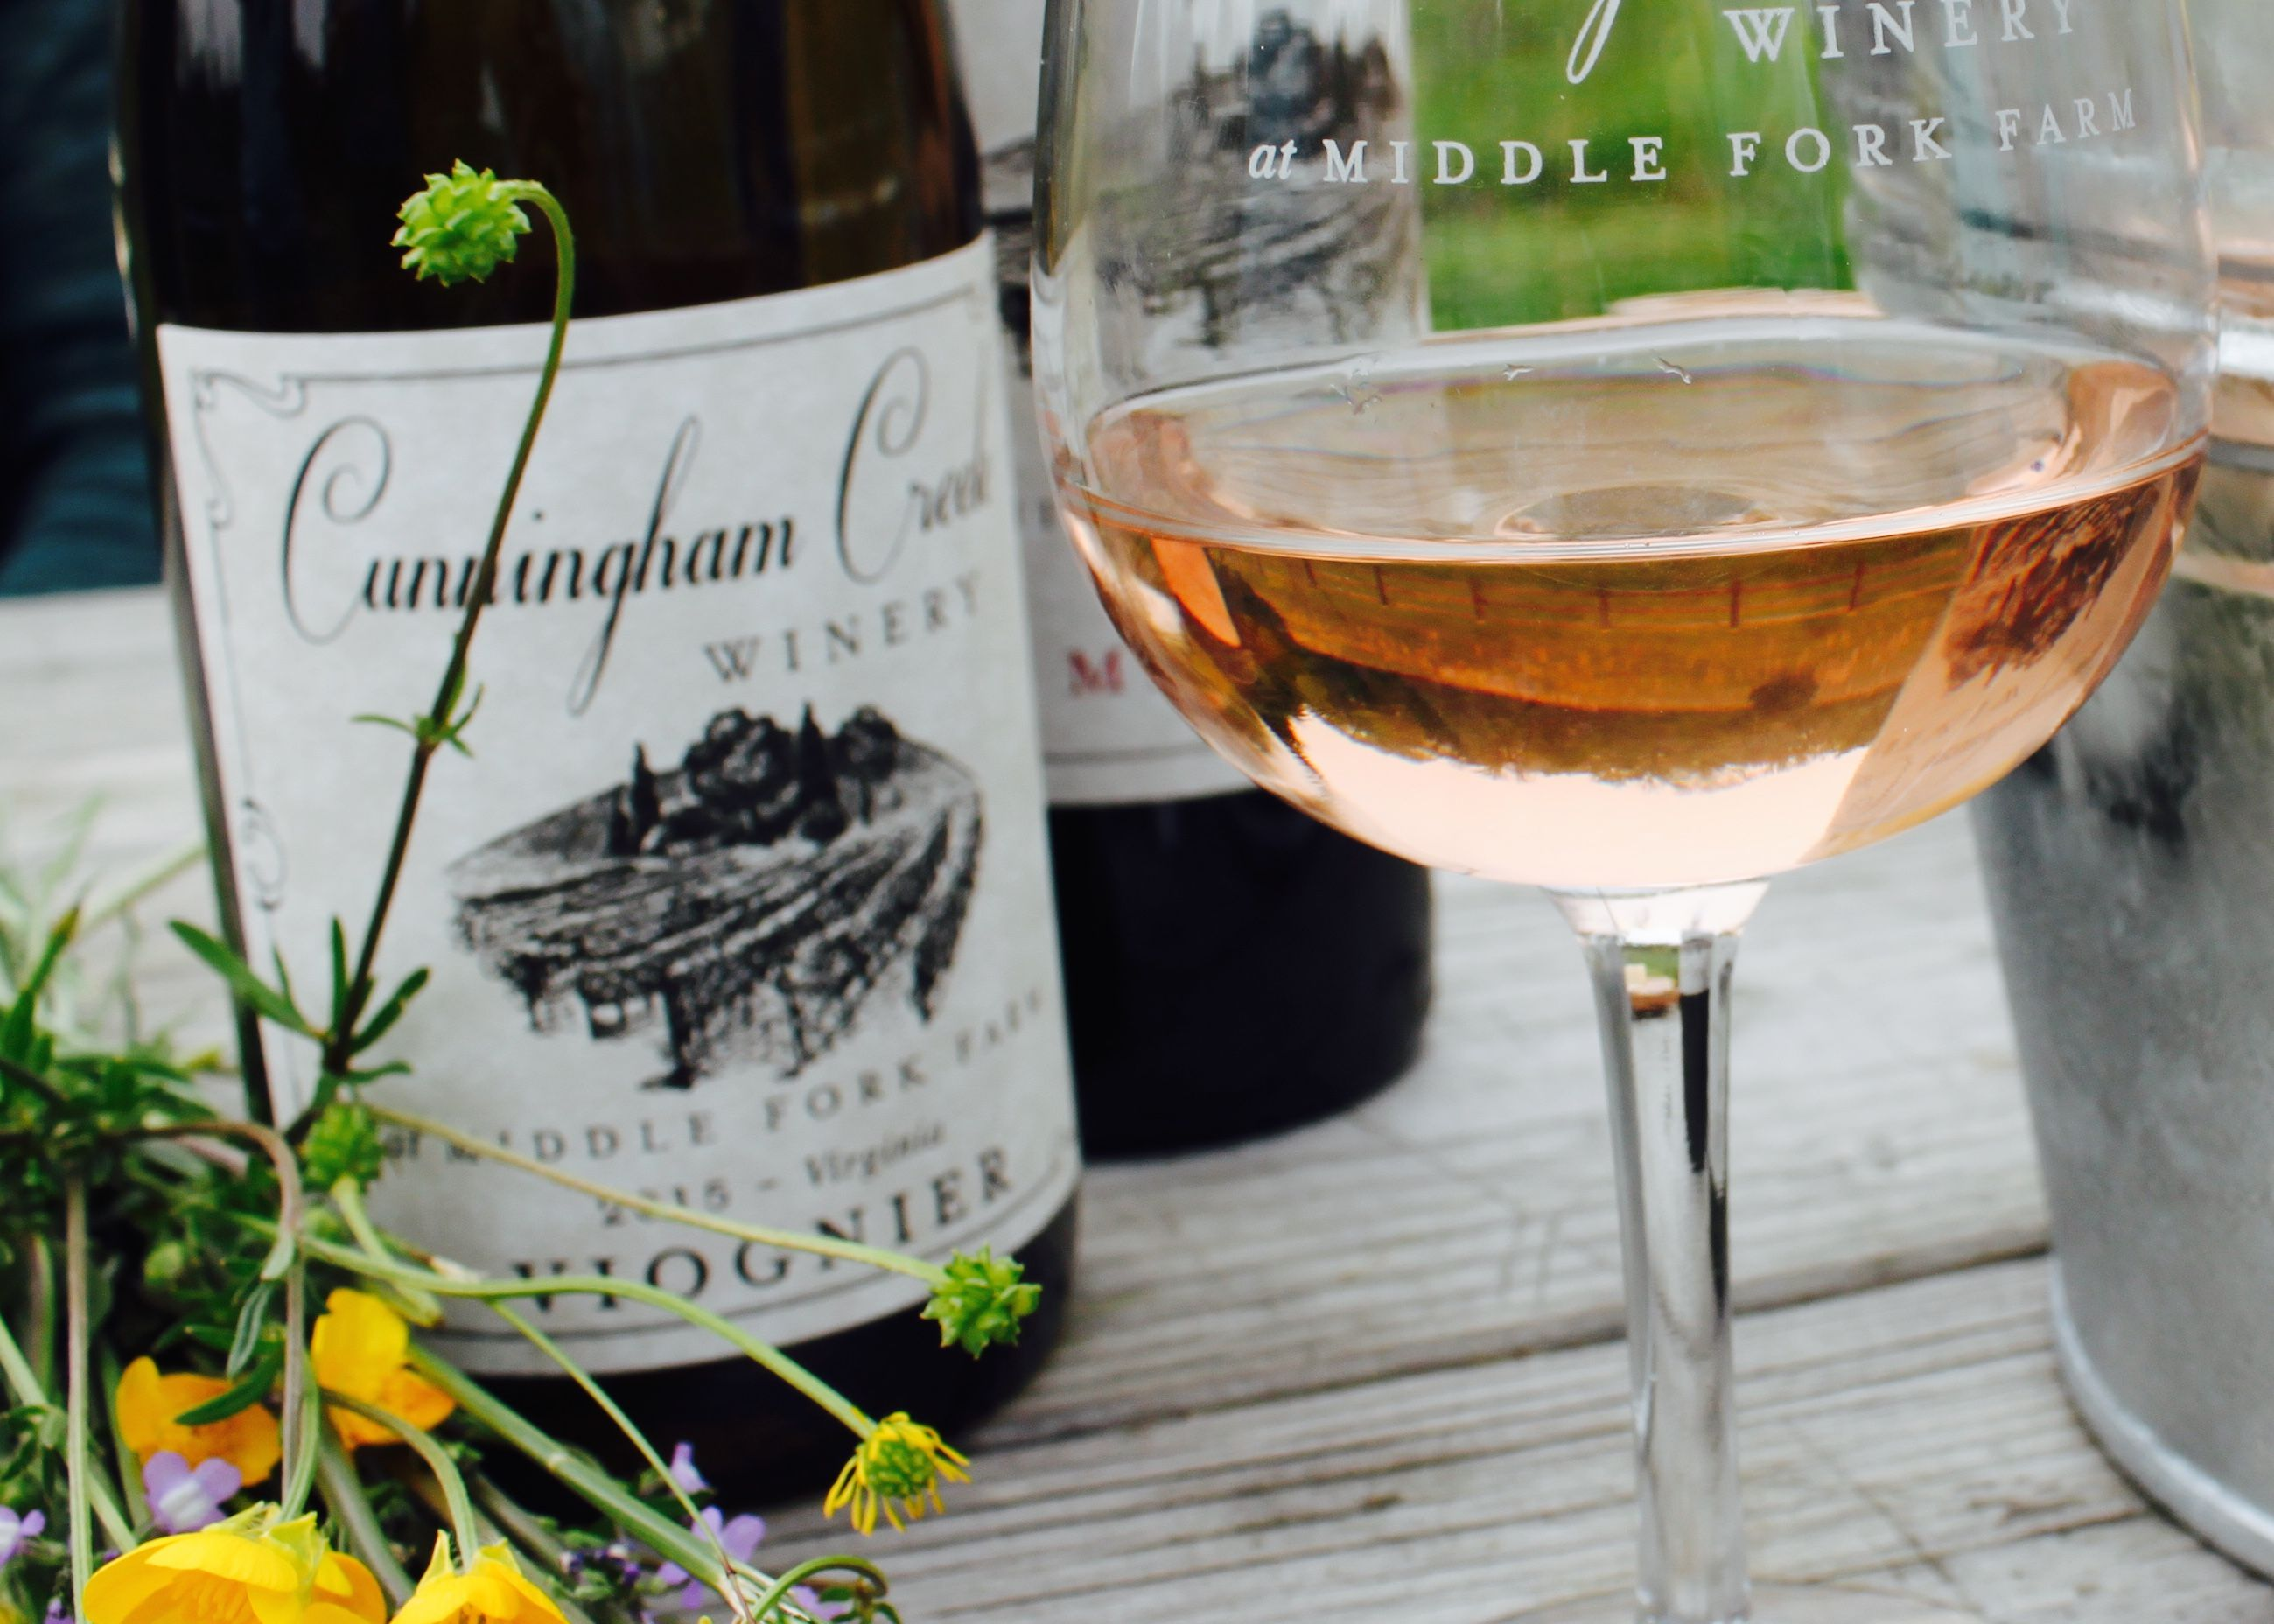 Cunningham Creek Winery, nestled in the beautiful Piedmont region of central Virginia. Tasting room and farm store opening Summer 2016.